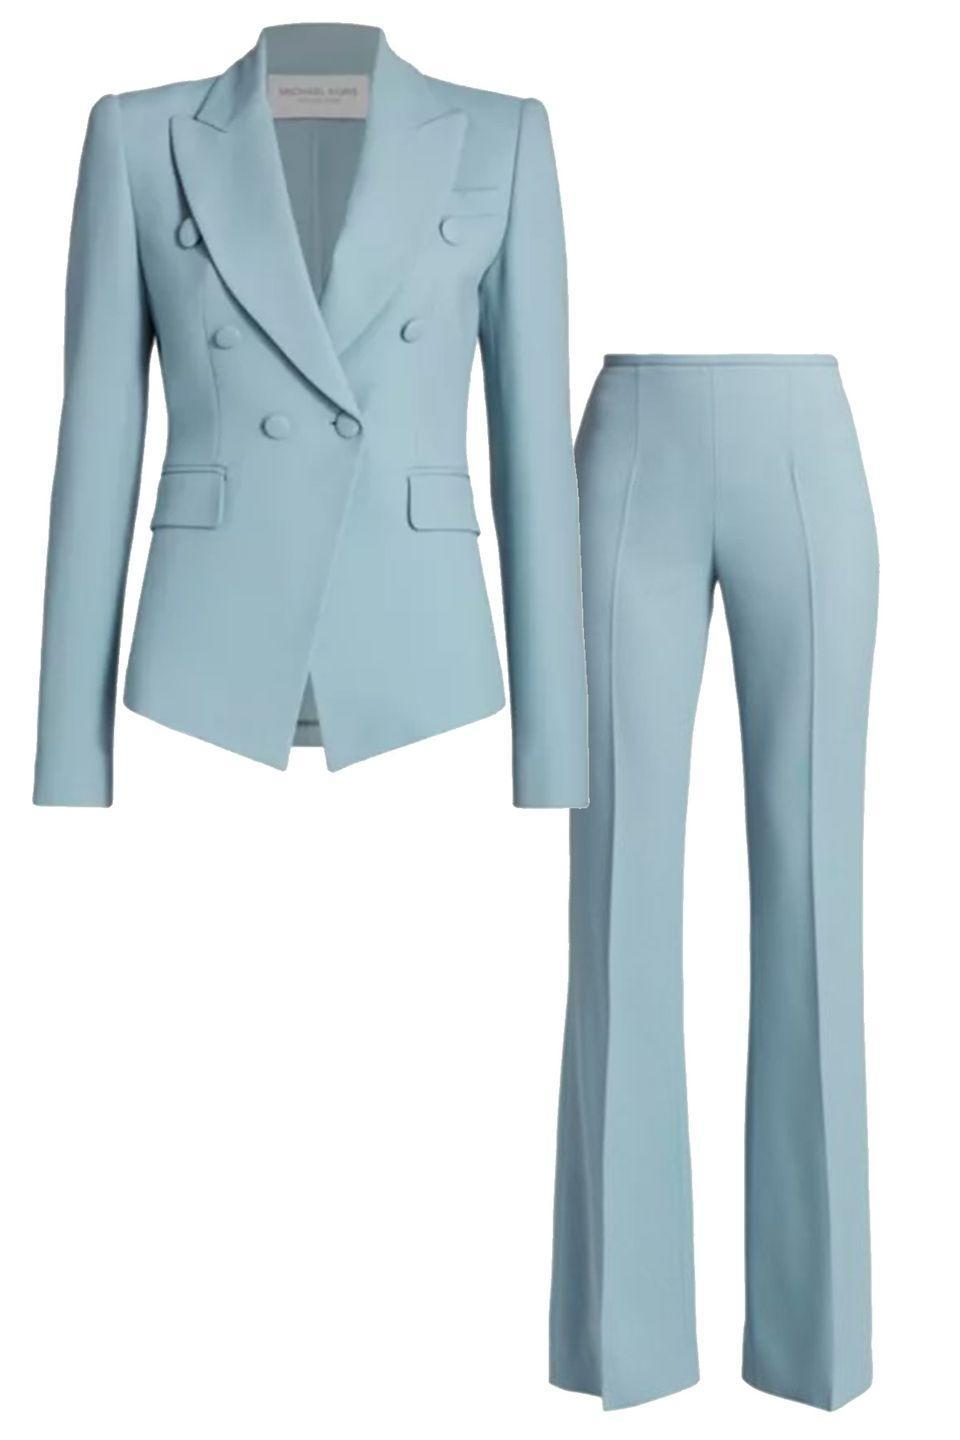 """<p>The cut of this eggshell blue Michael Kors suit set accentuates the leg and tailors the waist for an extremely becoming silhouette. <br></p><p><a href=""""https://go.skimresources.com?id=74968X1525087&xs=1&url=https%3A%2F%2Fwww.saksfifthavenue.com%2Fmichael-kors-collection-double-crepe-double-breasted-blazer%2Fproduct%2F0400012642323%3FFOLDER%253C%253Efolder_id%3D2534374306646244%26R%3D190417530440%26P_name%3DMichael%2BKors%2BCollection%26N%3D306646244%2B4294929615%2B4294929614%2B4294929610%2B4294929600%2B4294929616%26bmUID%3DniiGA8P"""" rel=""""nofollow noopener"""" target=""""_blank"""" data-ylk=""""slk:Michael Kors Blazer"""" class=""""link rapid-noclick-resp""""><br>Michael Kors Blazer</a><a href=""""https://go.skimresources.com?id=74968X1525087&xs=1&url=https%3A%2F%2Fwww.saksfifthavenue.com%2Fmichael-kors-collection-brooke-double-crepe-flare-pants%2Fproduct%2F0400012641119%3FclickType%3DPRODUCT_RECOMMENDATIONS"""" rel=""""nofollow noopener"""" target=""""_blank"""" data-ylk=""""slk:Michael Kors Pant"""" class=""""link rapid-noclick-resp""""><br>Michael Kors Pant</a></p>"""